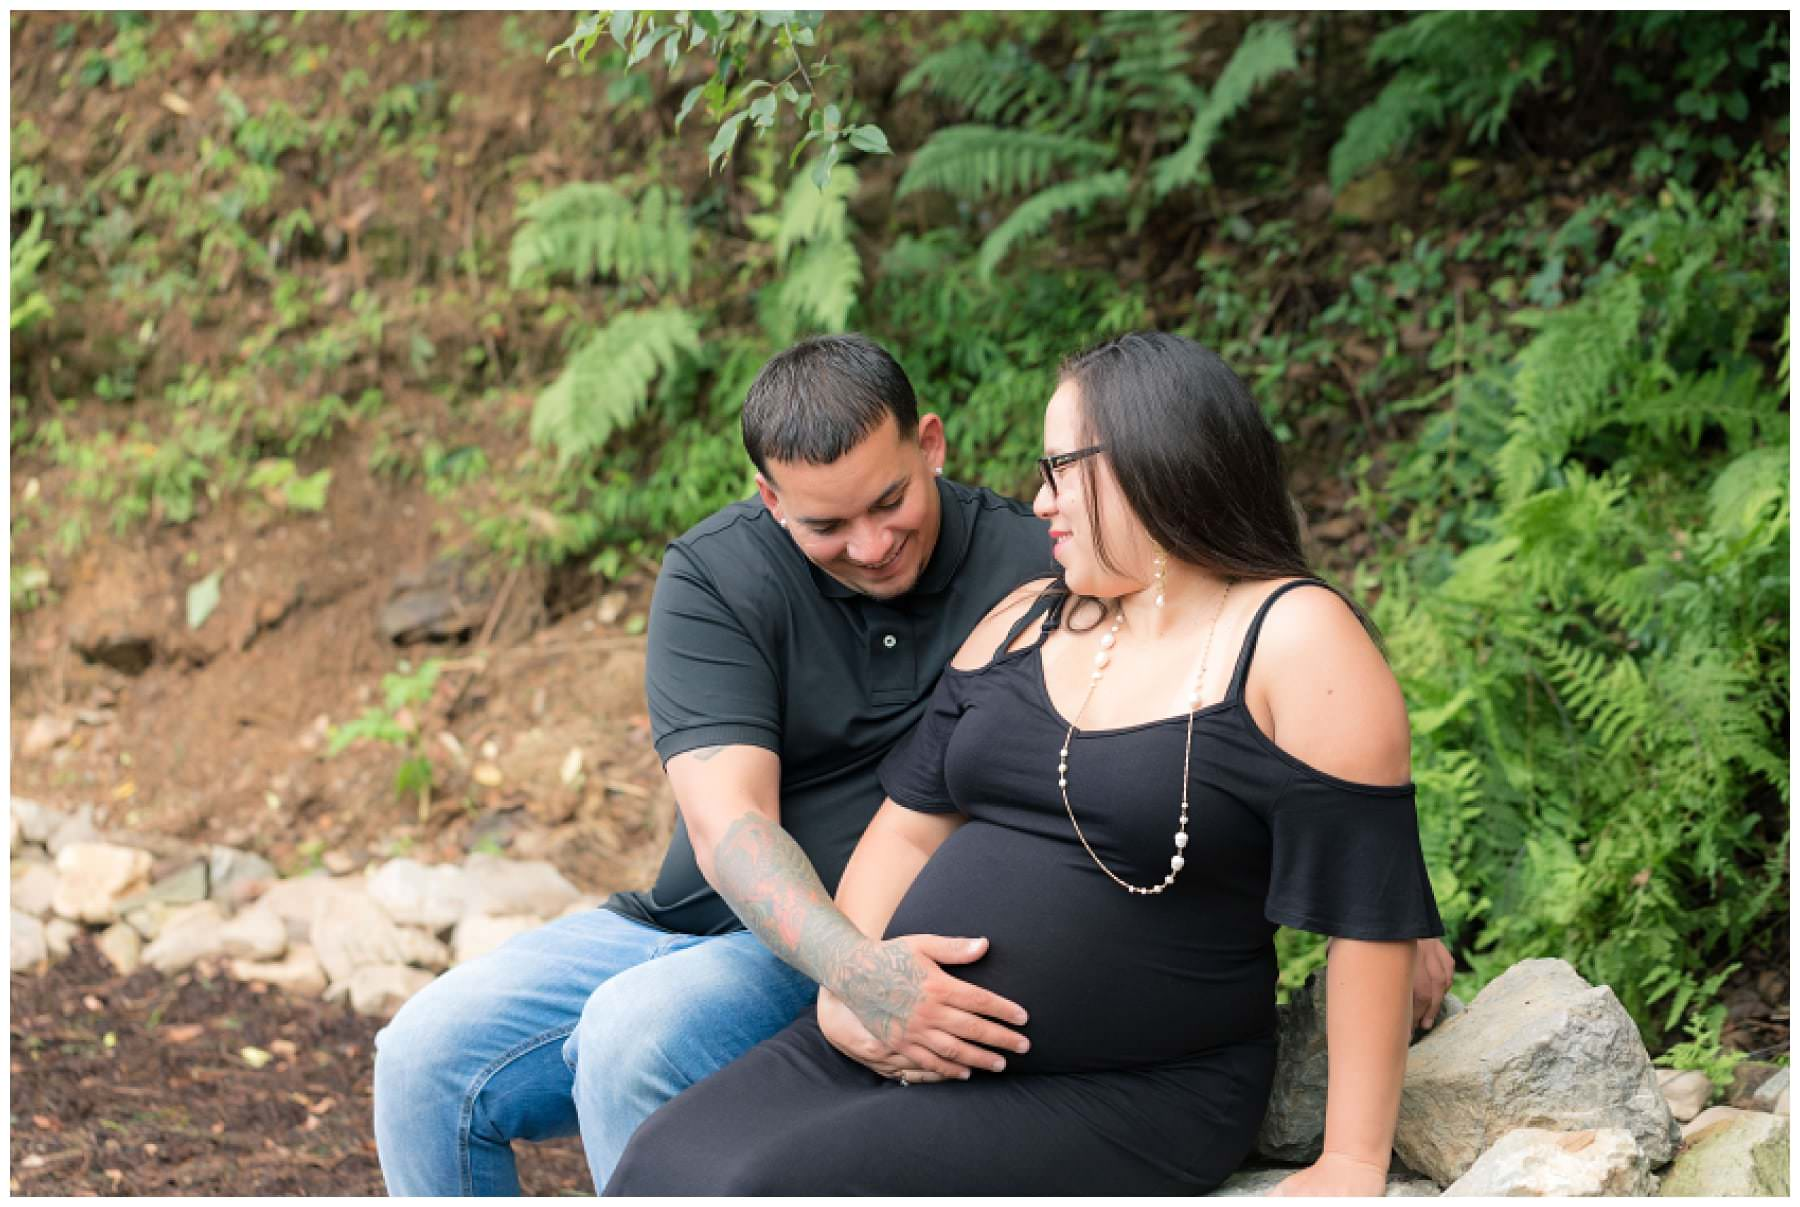 Outdoor maternity photos of couple wearing black